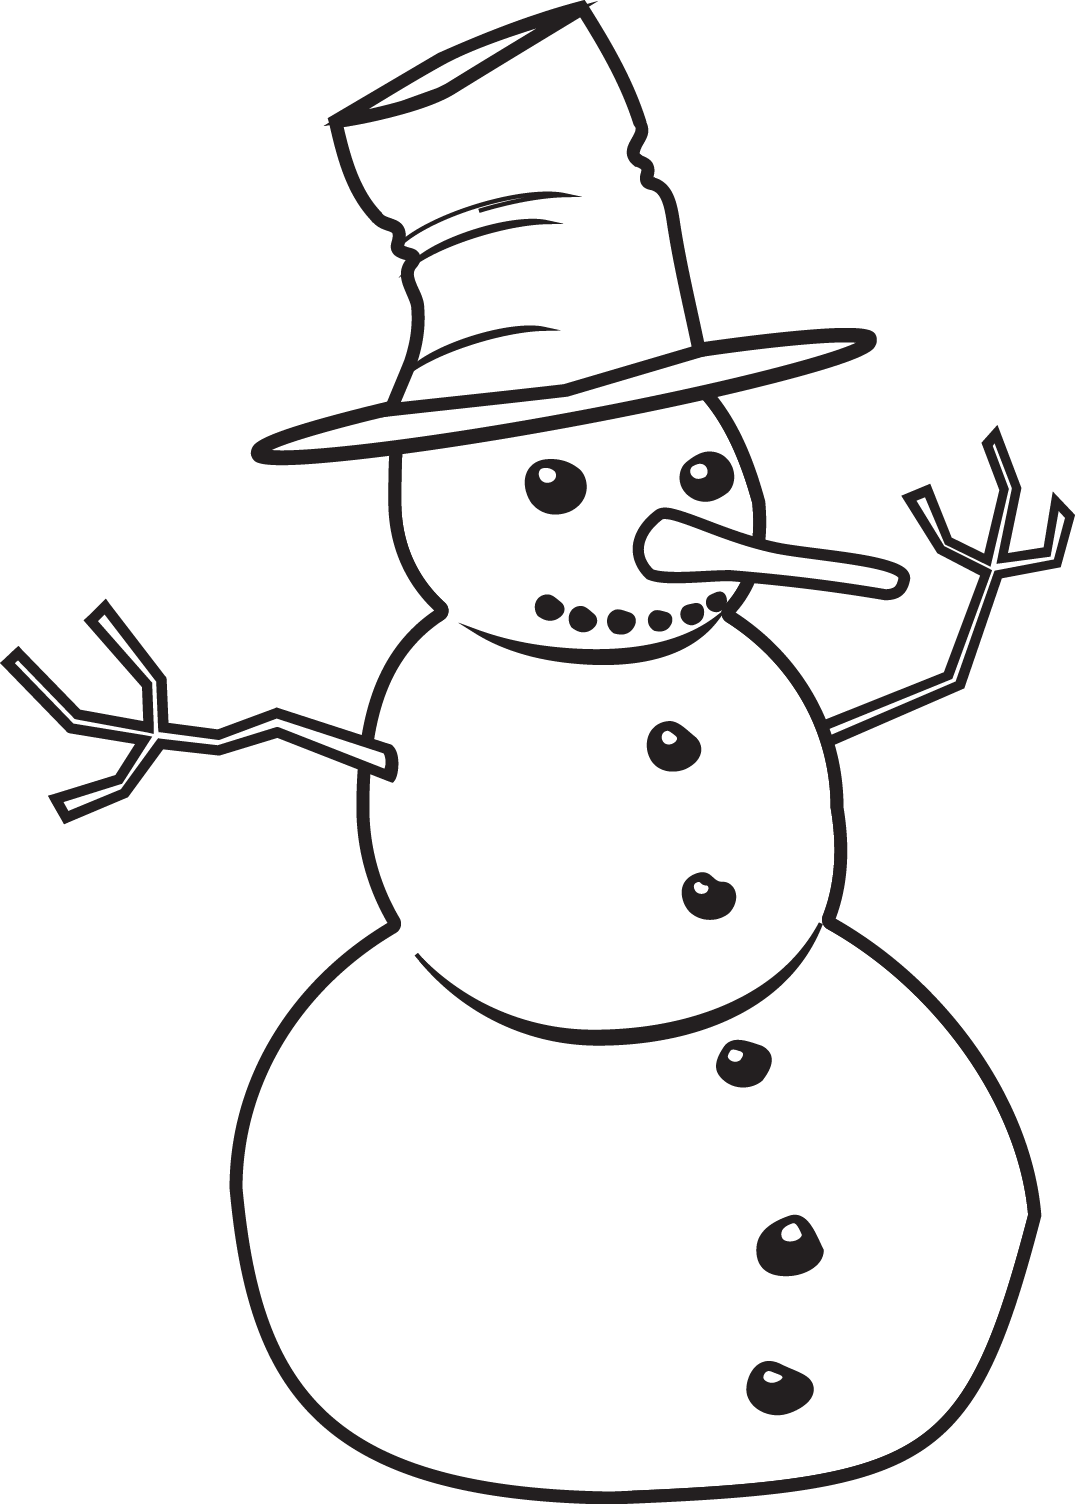 1075x1504 Snowman Clipart In Black And White For Free Clip Art